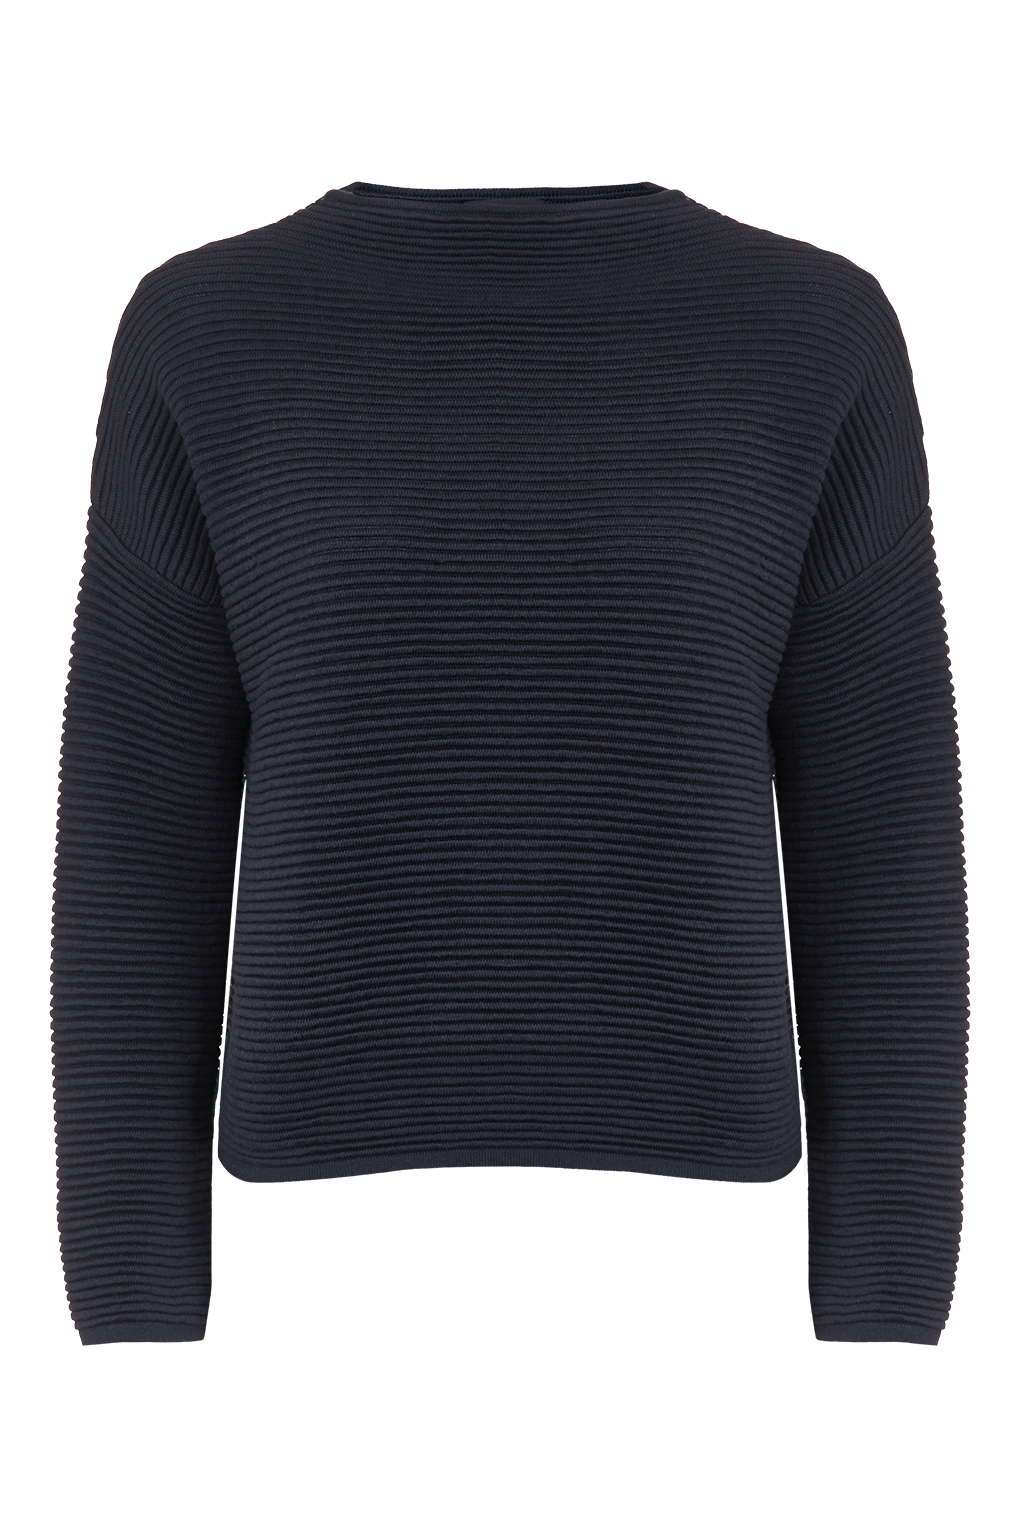 Topshop Horizontal Rib Sweatshirt in Blue | Lyst